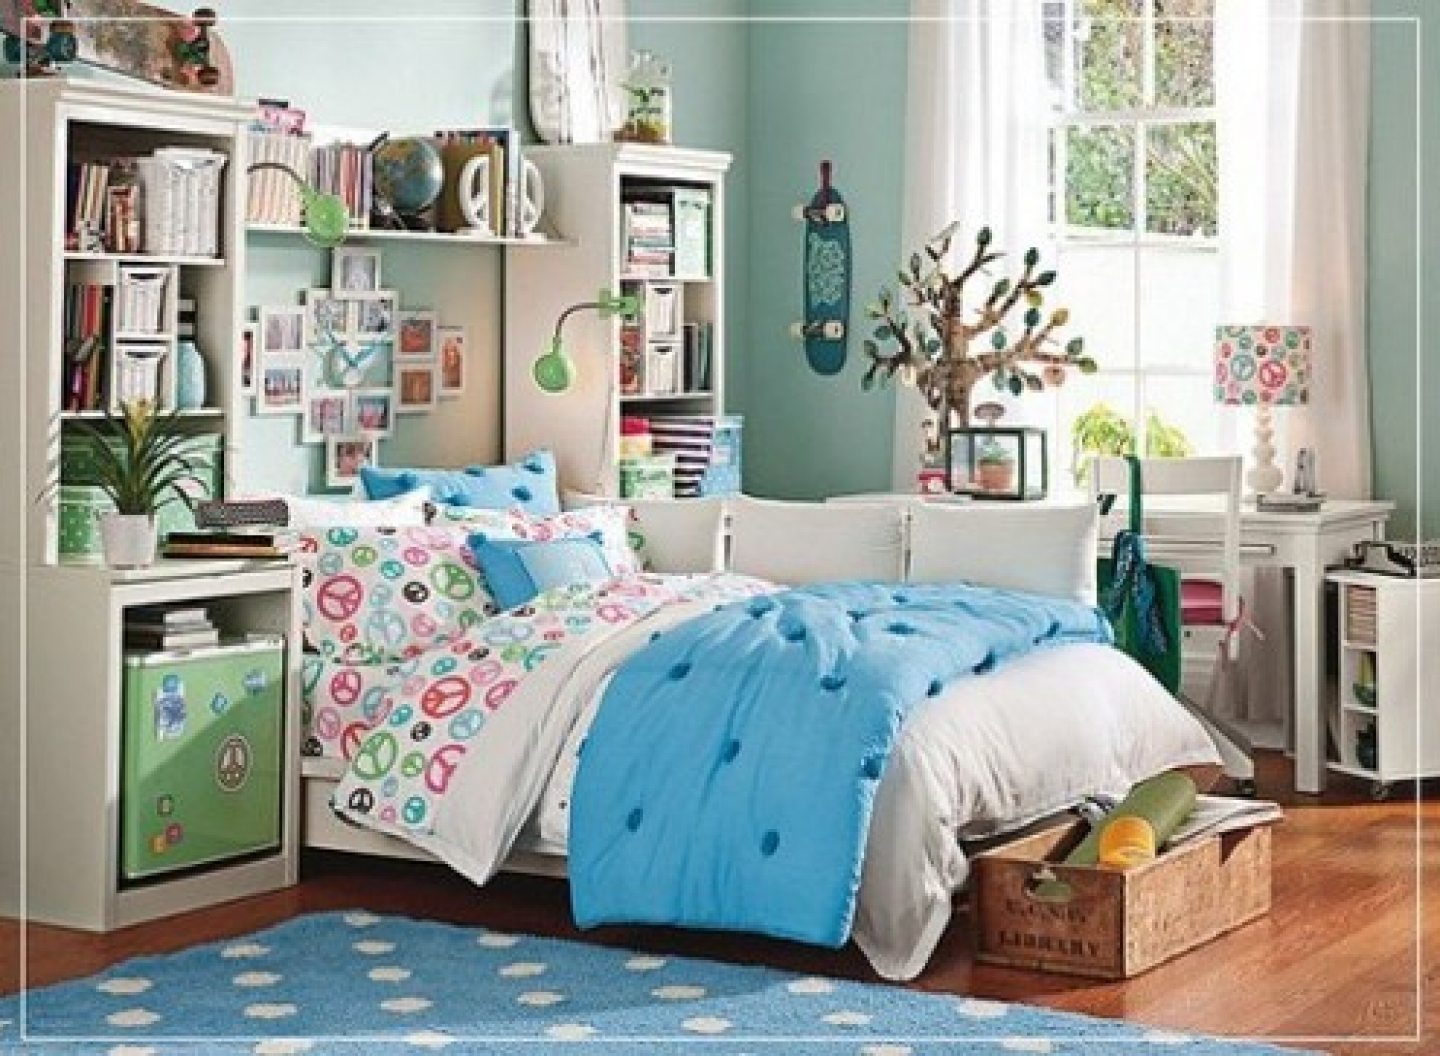 teenage bedroom decorations photo - 2